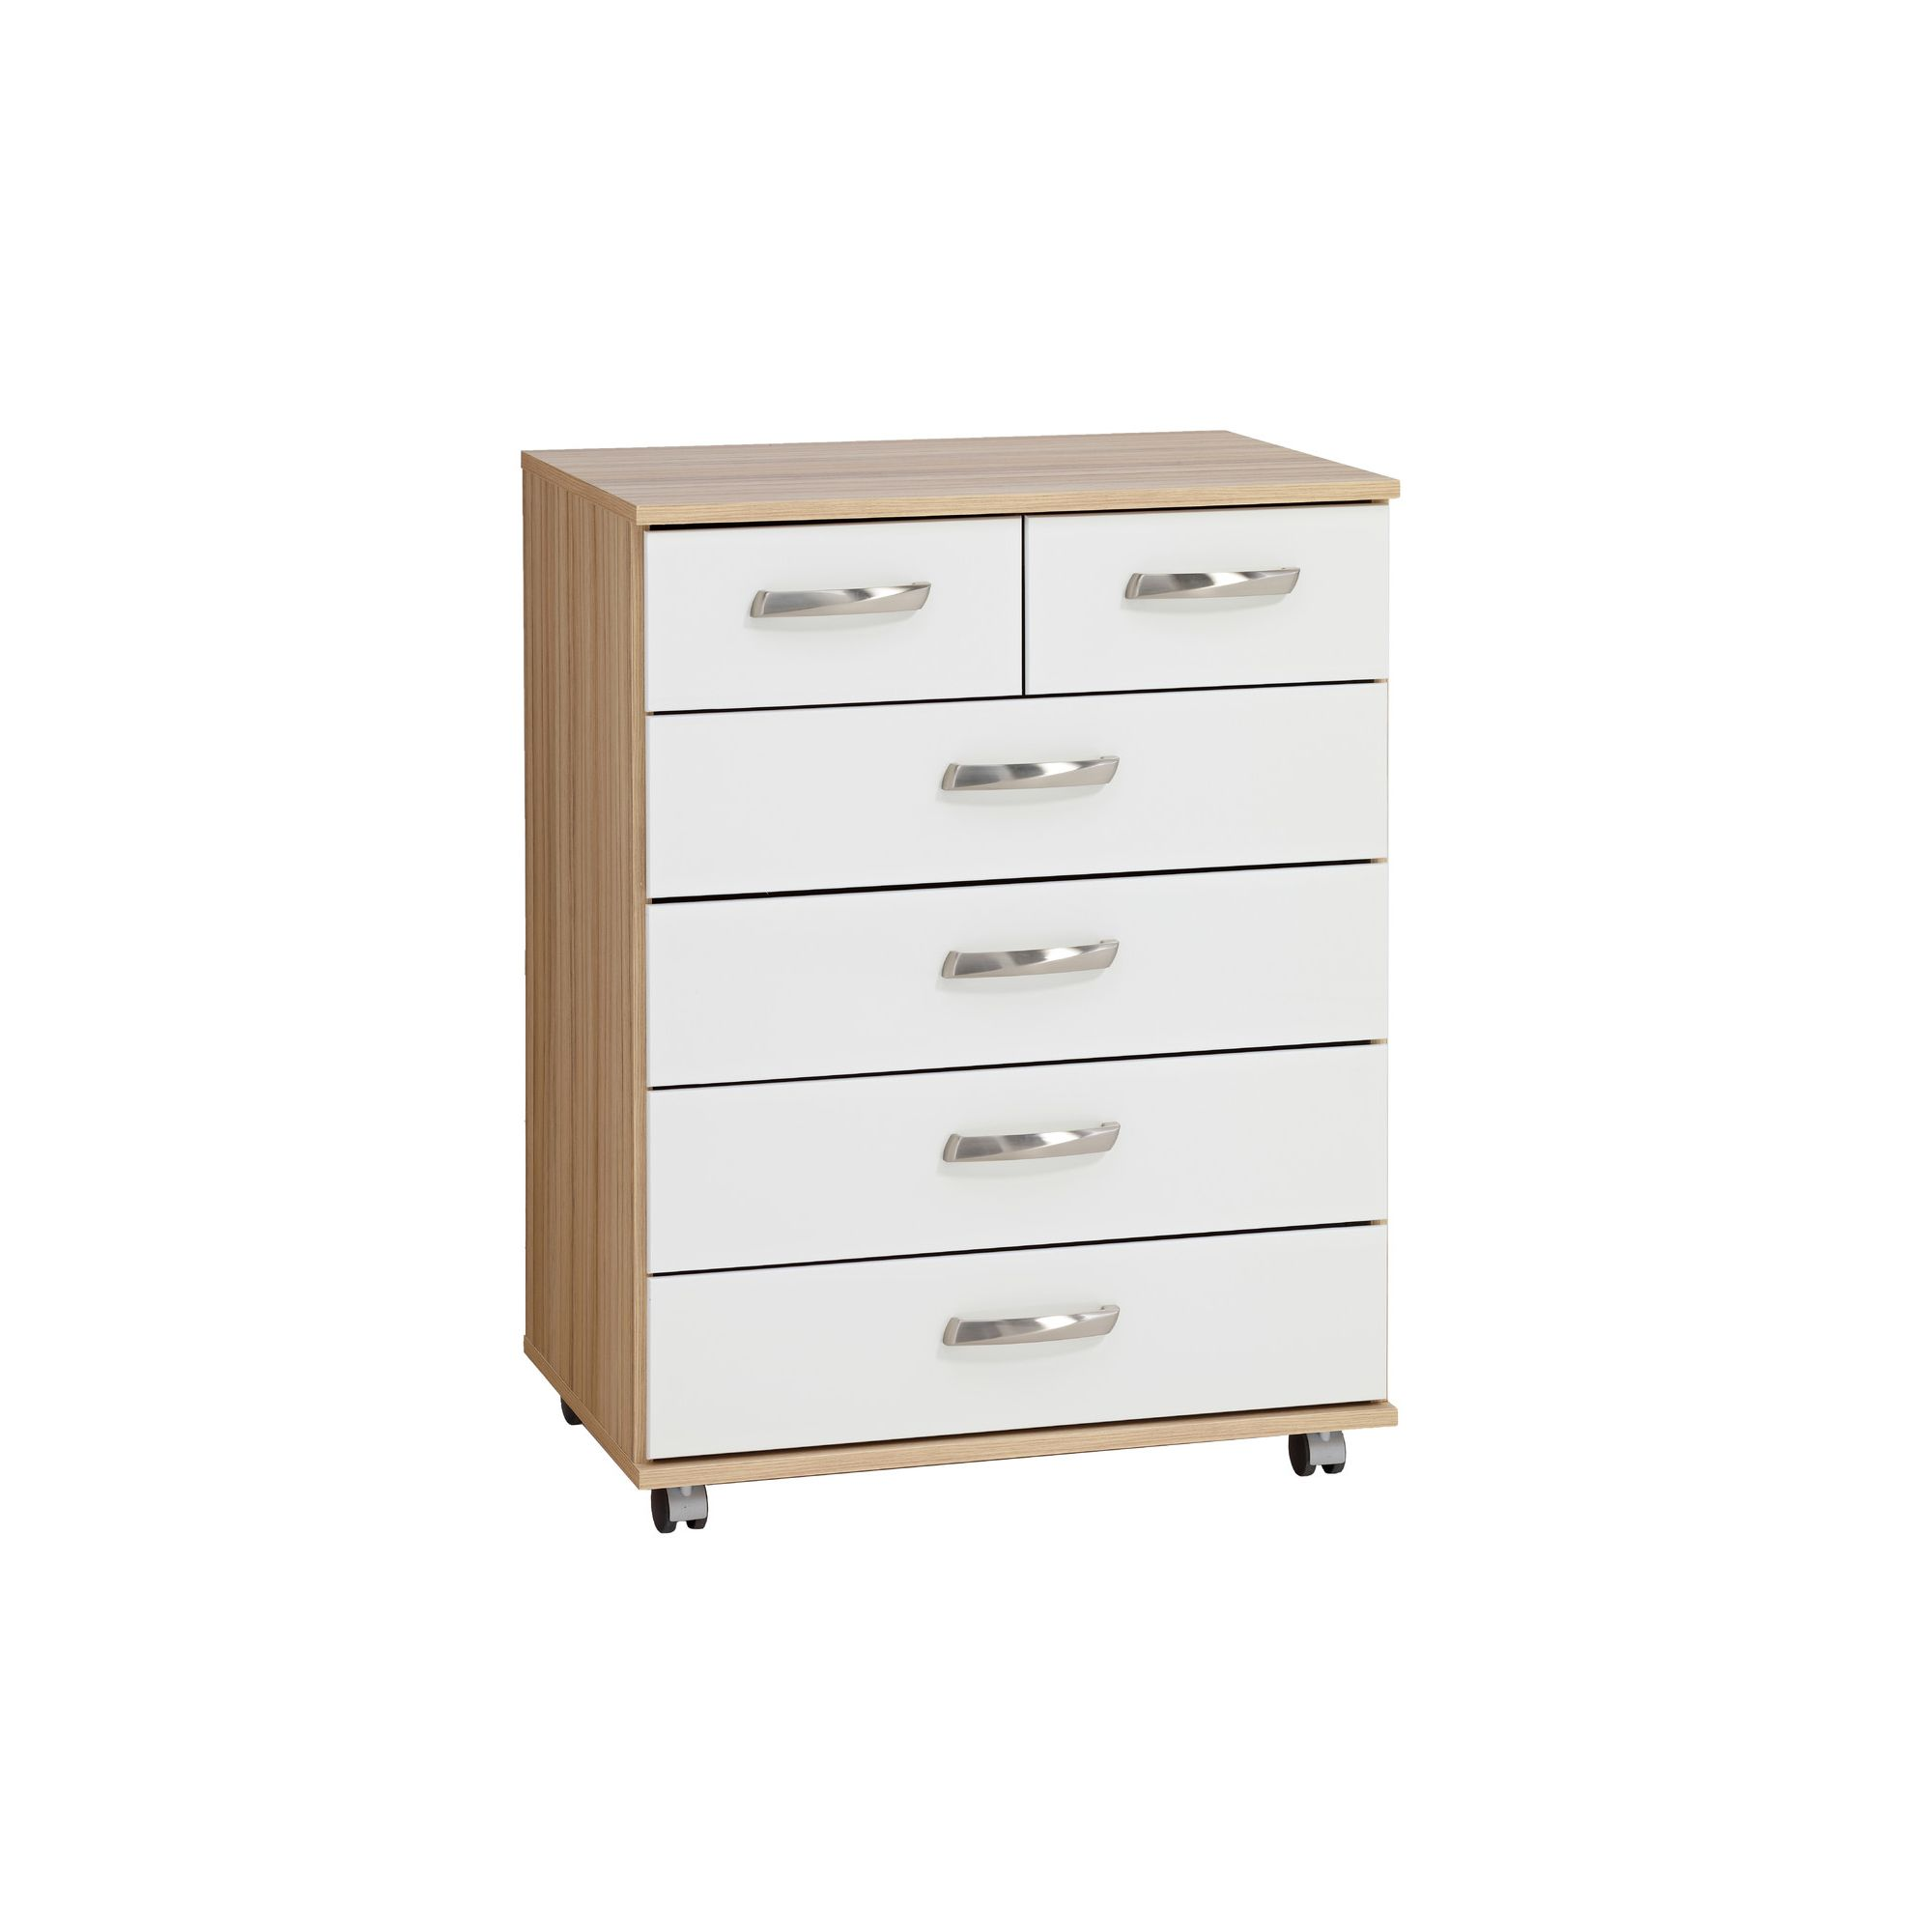 Ideal Furniture Regal Drawer Chest in white at Tesco Direct